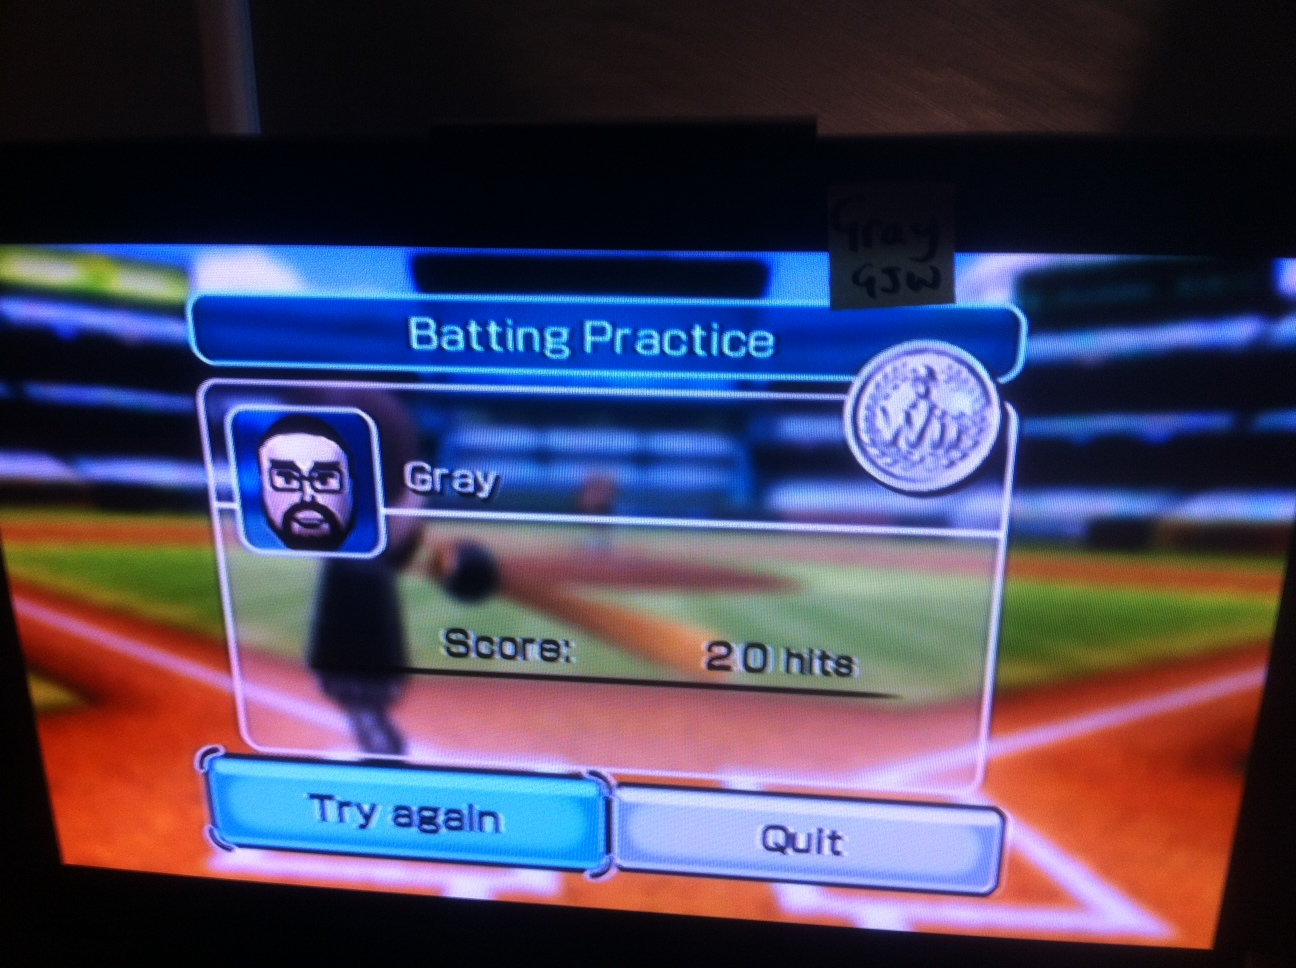 Wii Sports: Baseball [Batting Practice] 20 points